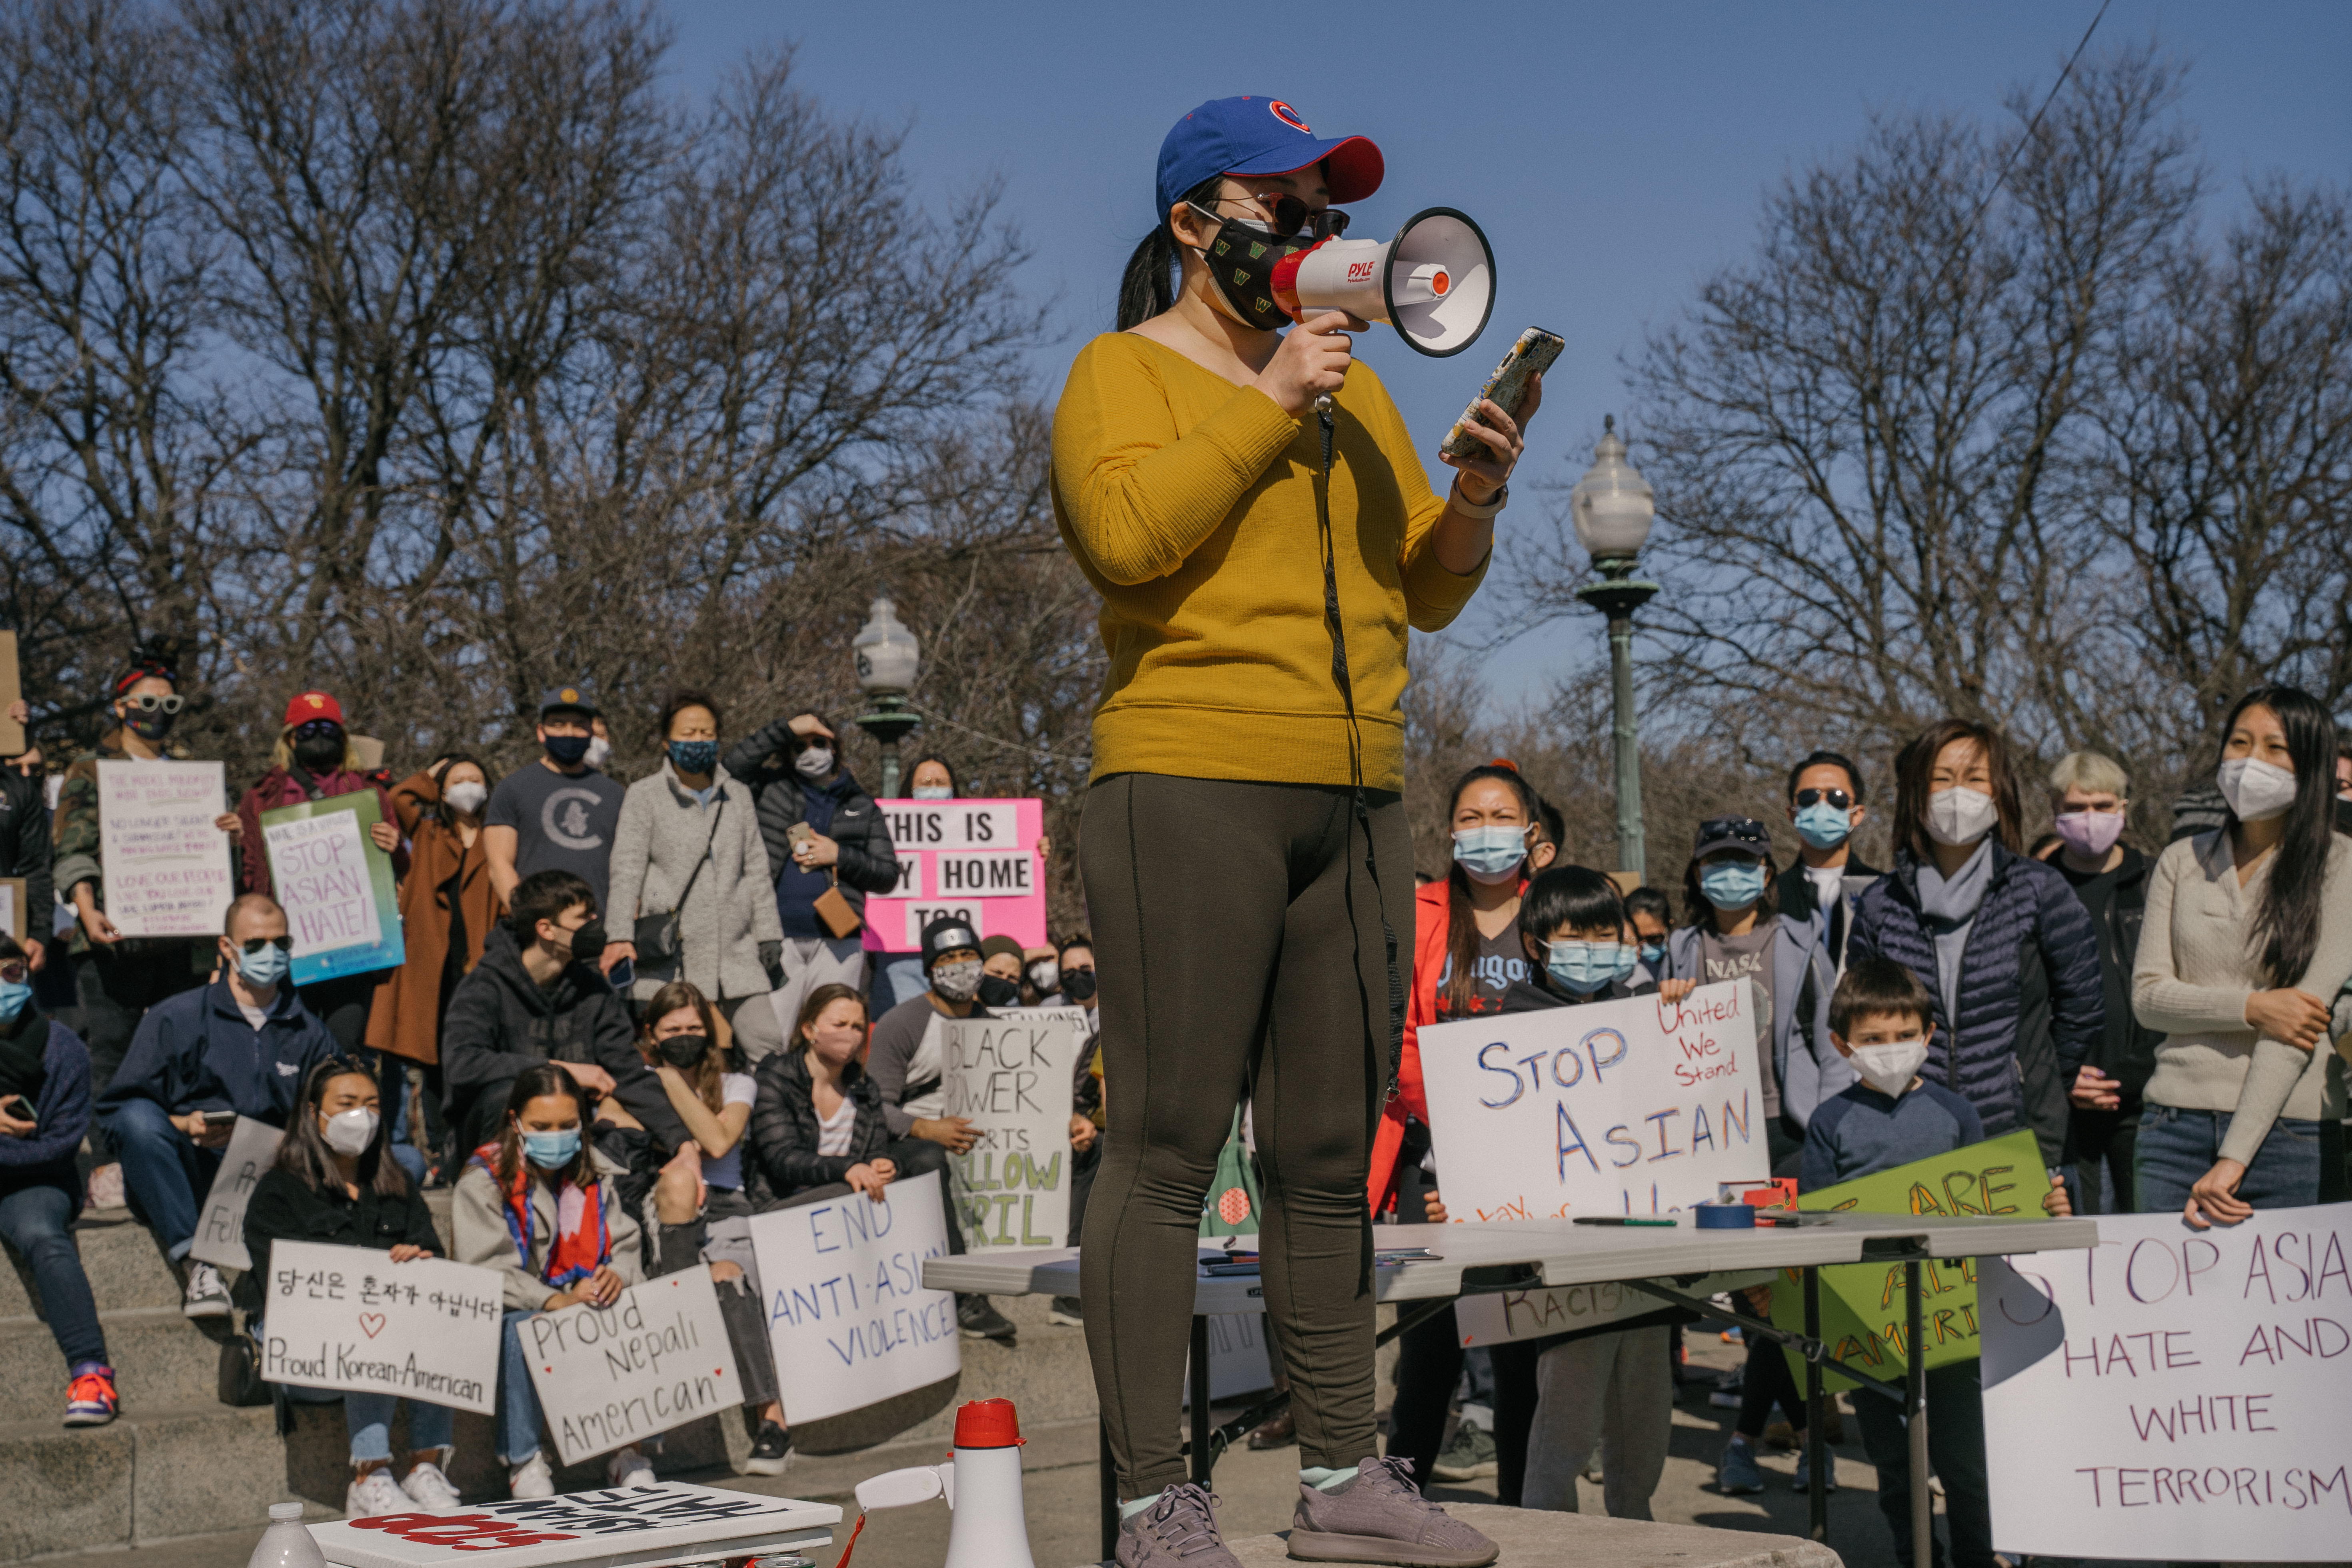 Qiong Chen, a teacher at Westinghouse College Prep, speaks to the crowd with a megaphone during the Stop Asian Hate March at the Illinois Centennial Monument in Logan Square, Saturday afternoon, March 20, 2021.